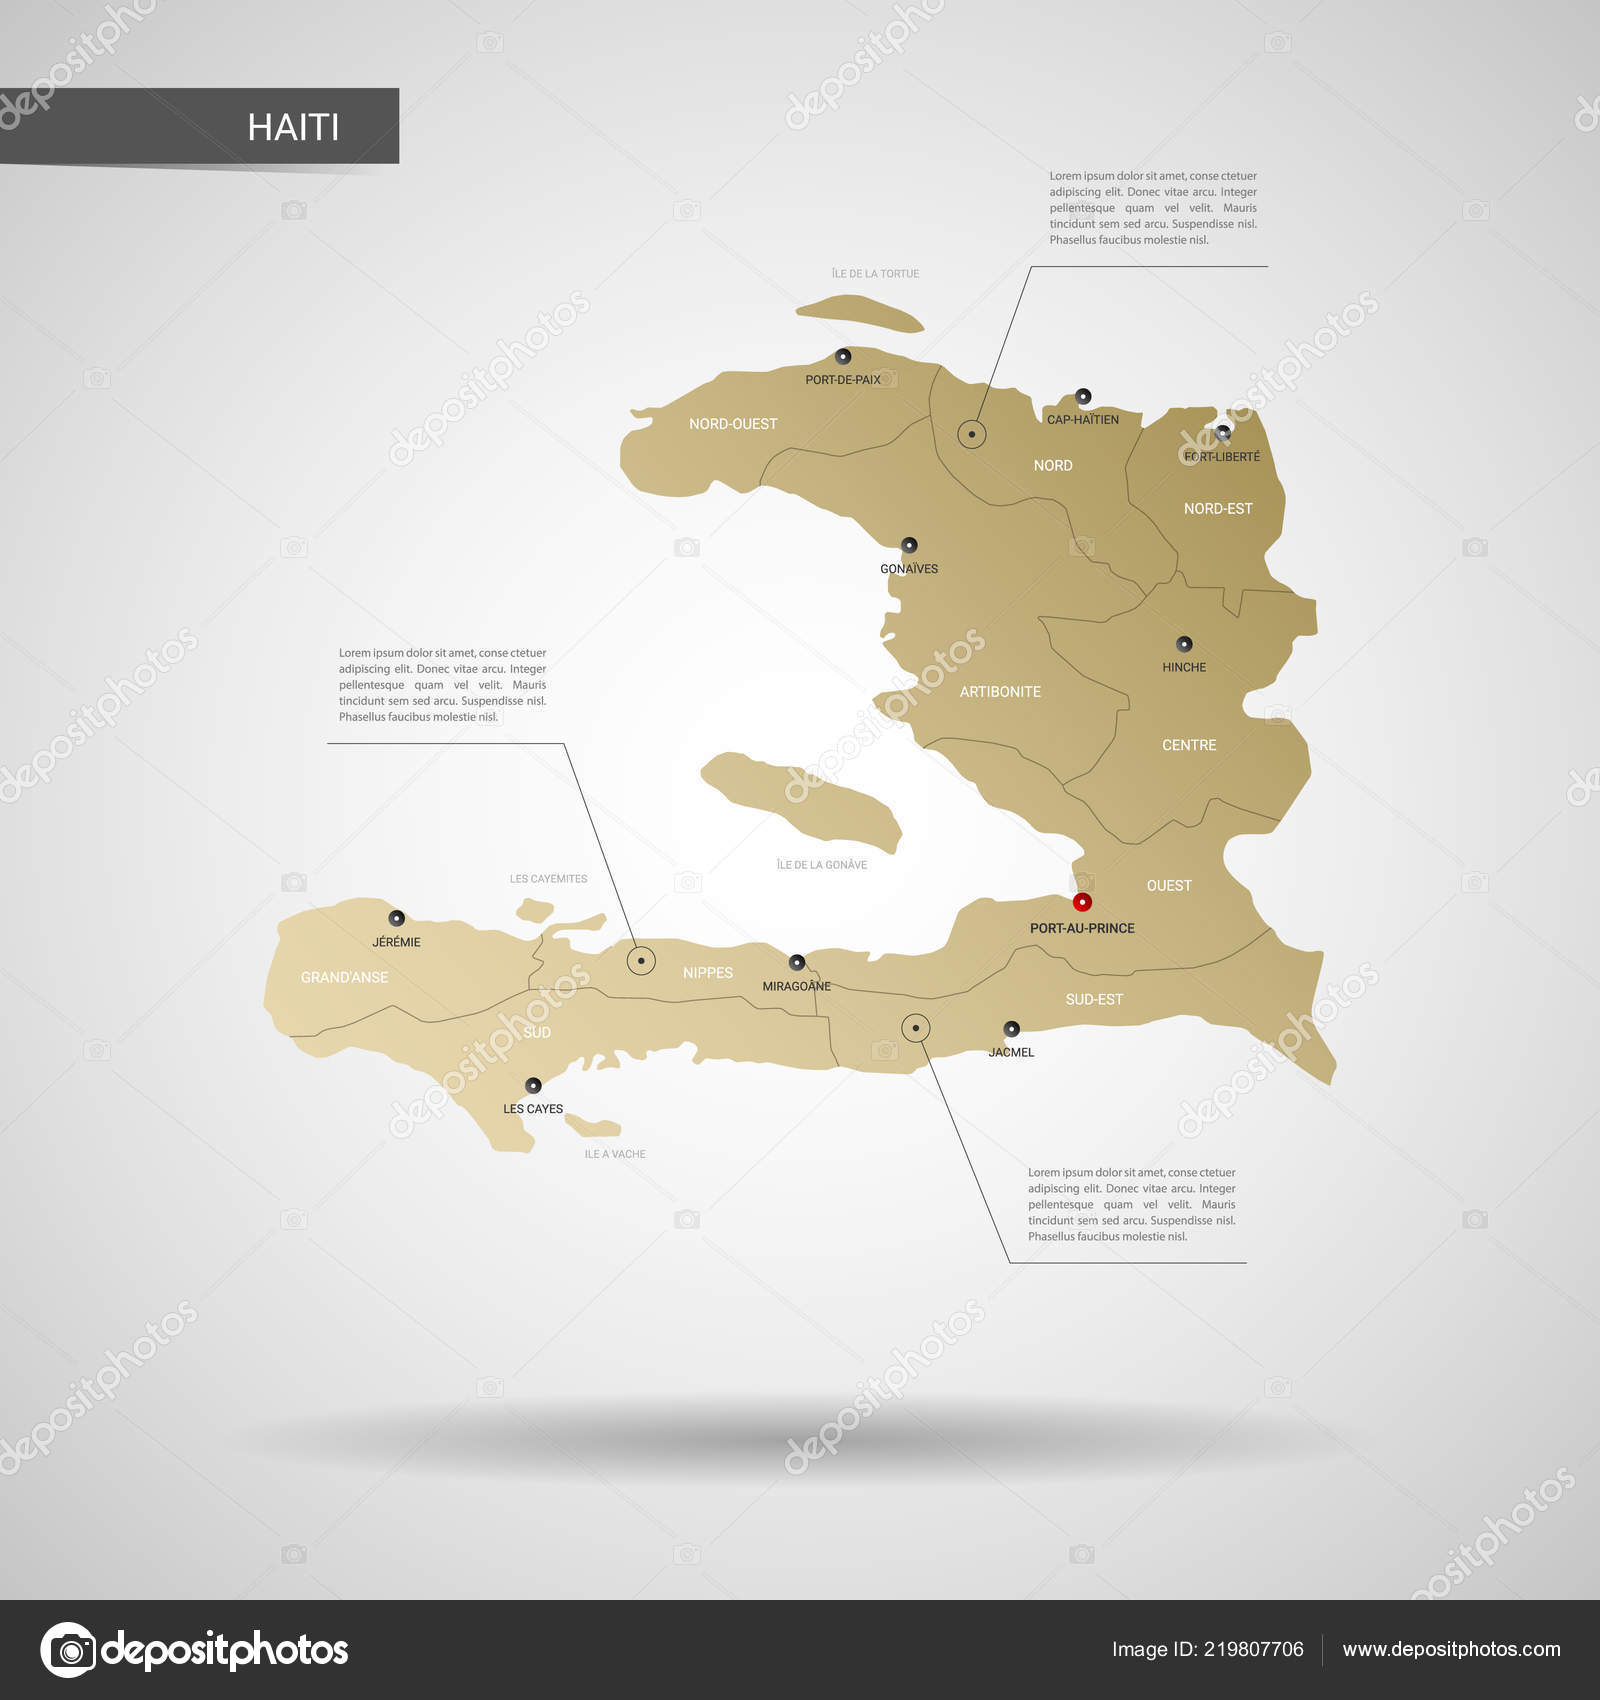 Stylized Vector Haiti Map Infographic Gold Map Illustration Cities ...